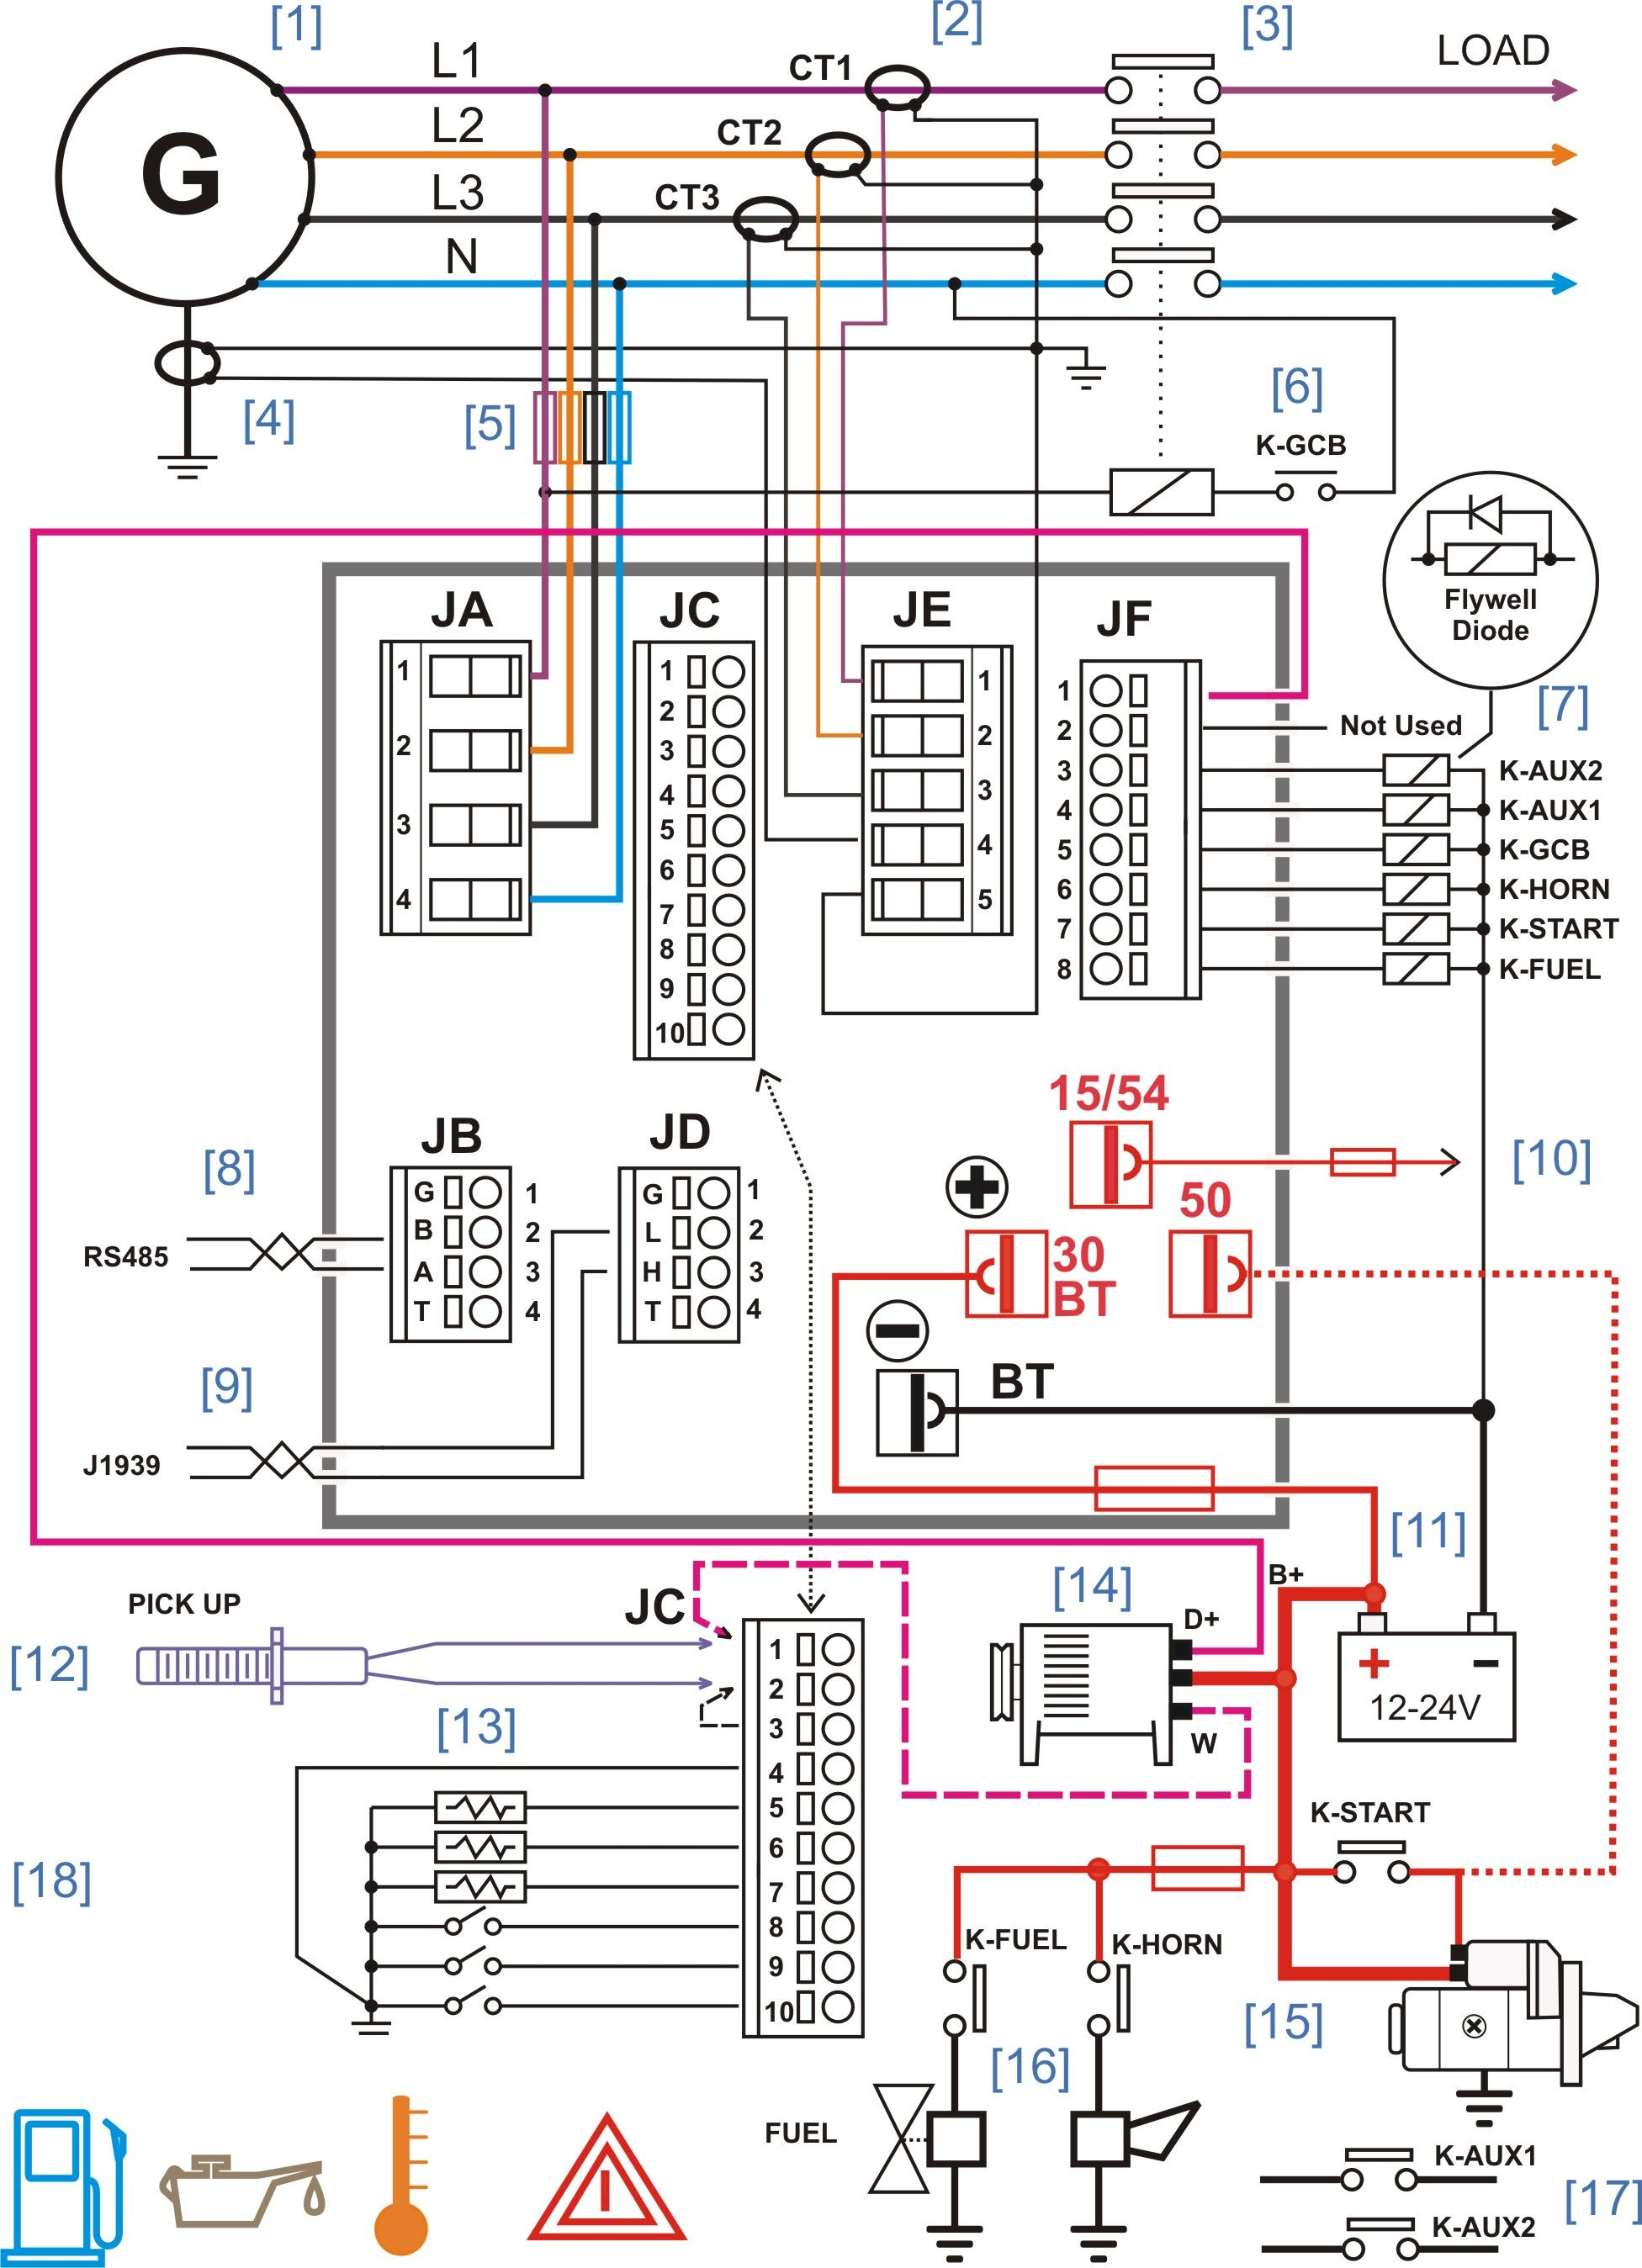 building automation system wiring diagram wiring diagrambuilding automation wiring diagrams 4 8 tierarztpraxis ruffy de \\u2022building management system wiring diagram wiring